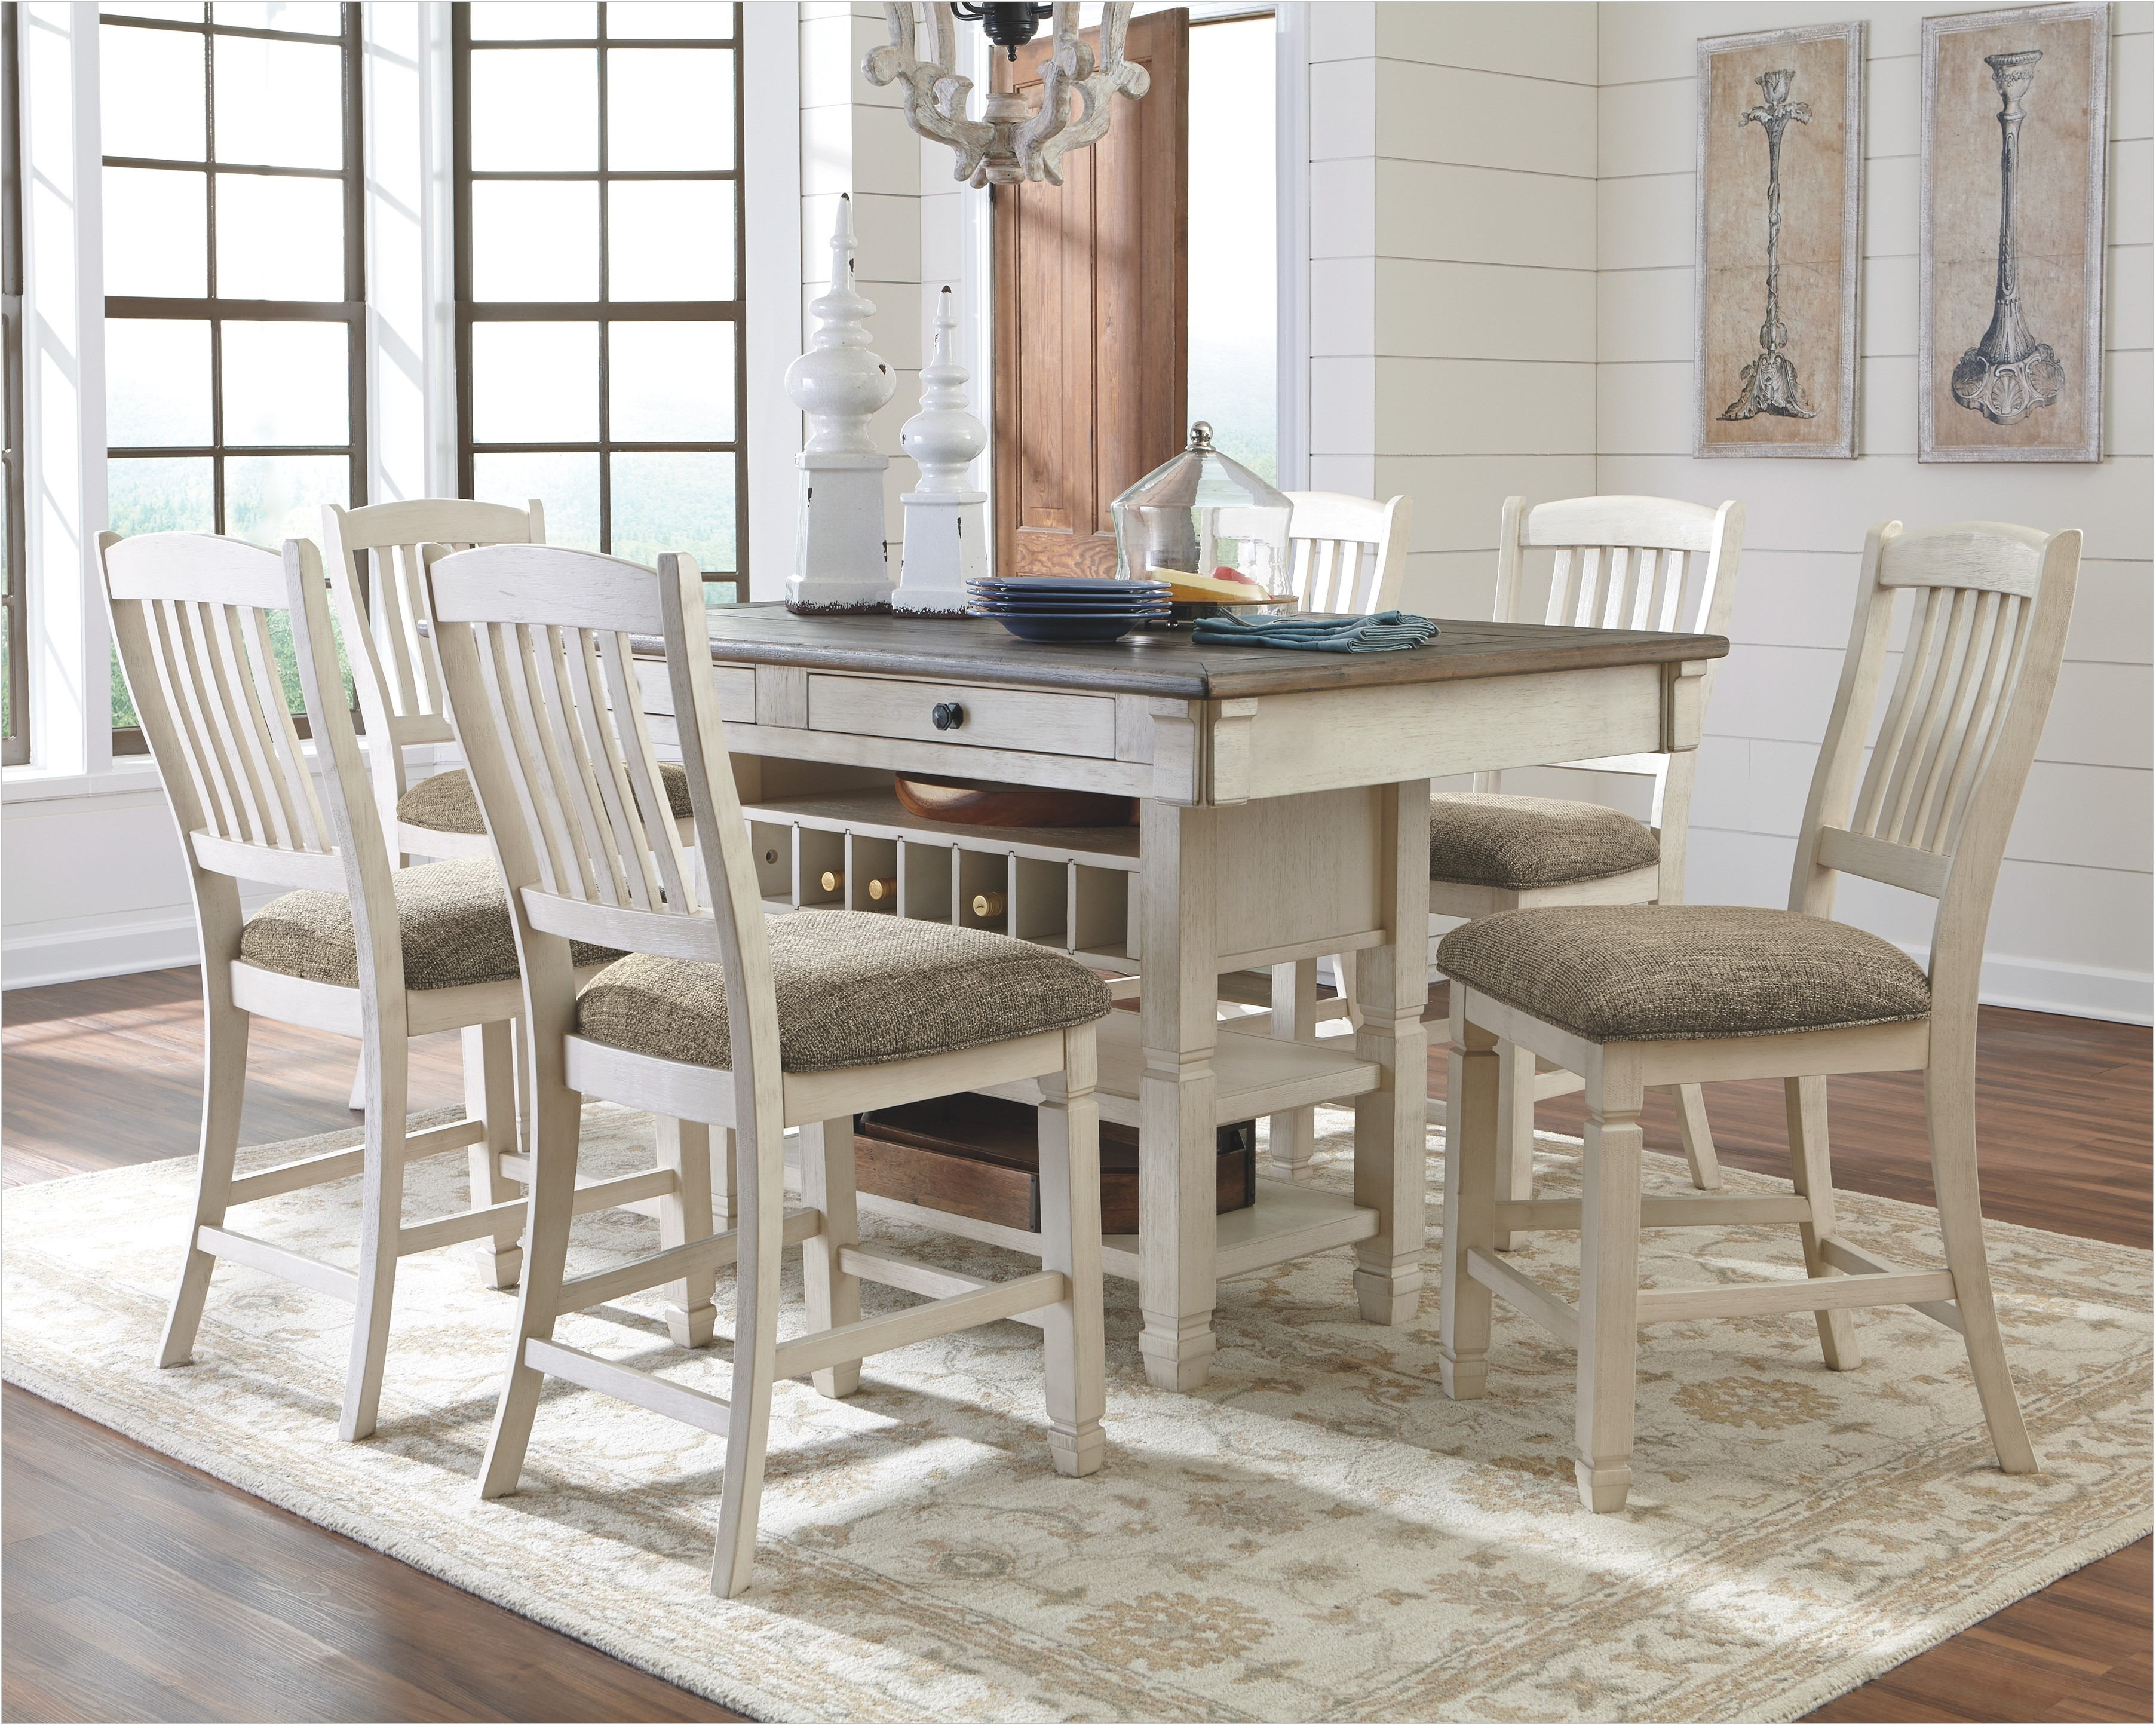 Bolanburg 5 Piece Counter Height Dining Room